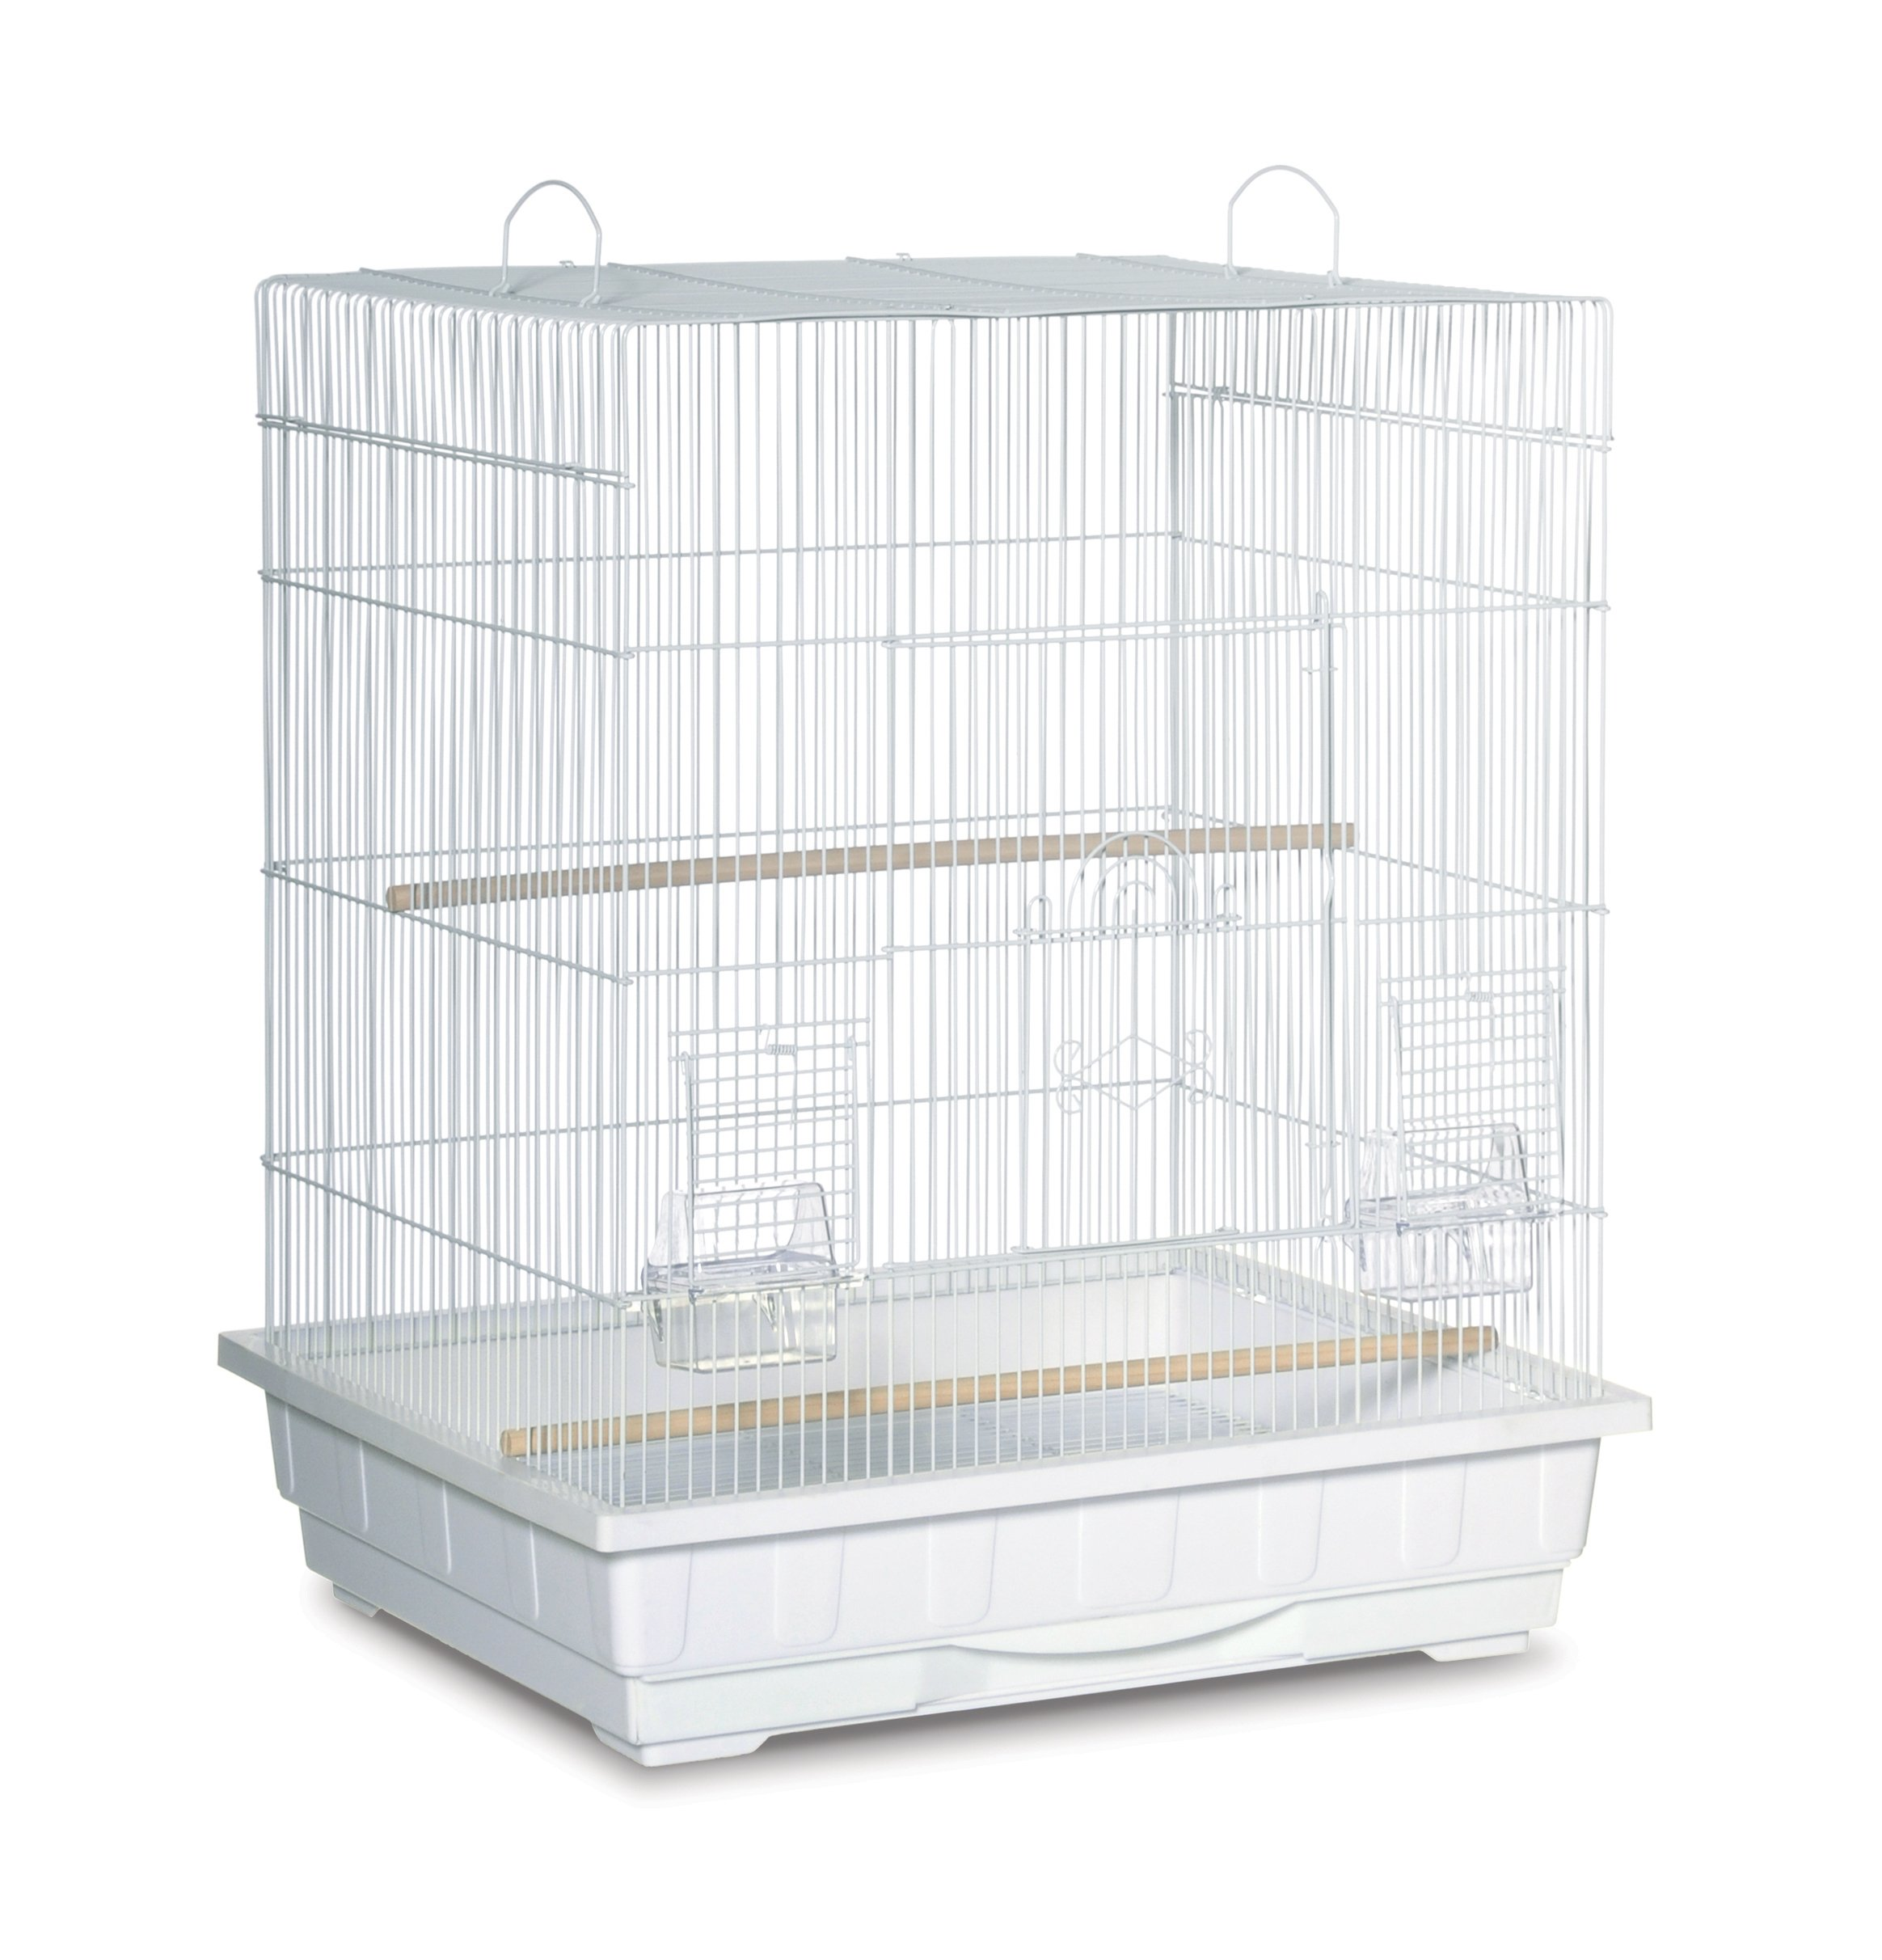 Prevue Pet Products Square Top Parakeet Cage, White by Prevue Hendryx